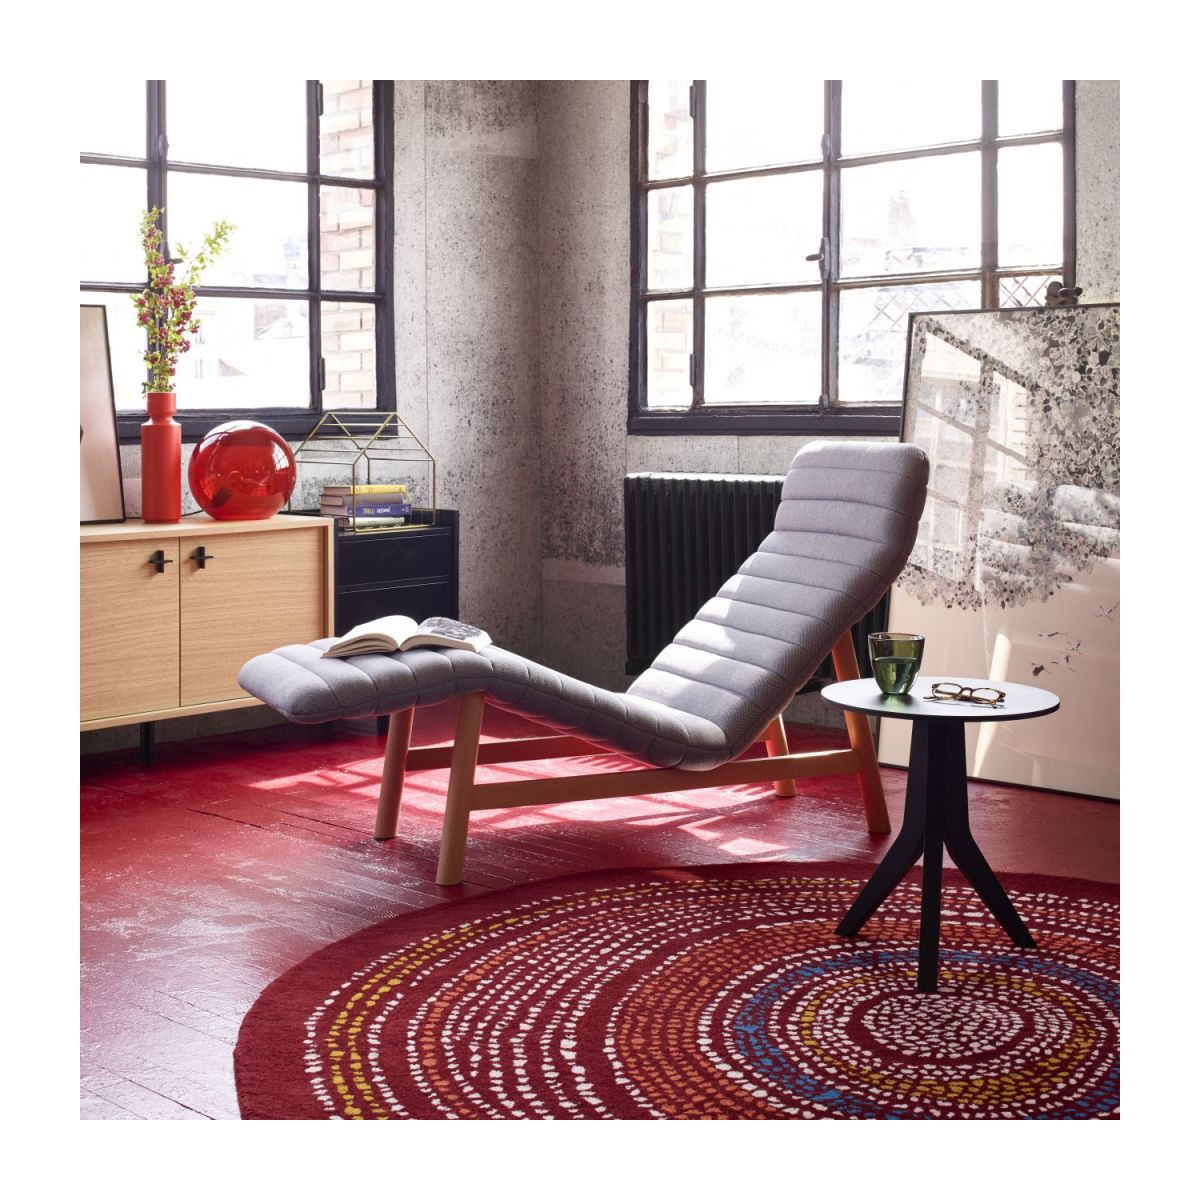 Tufted carpet 200cm, red with patterns n°2